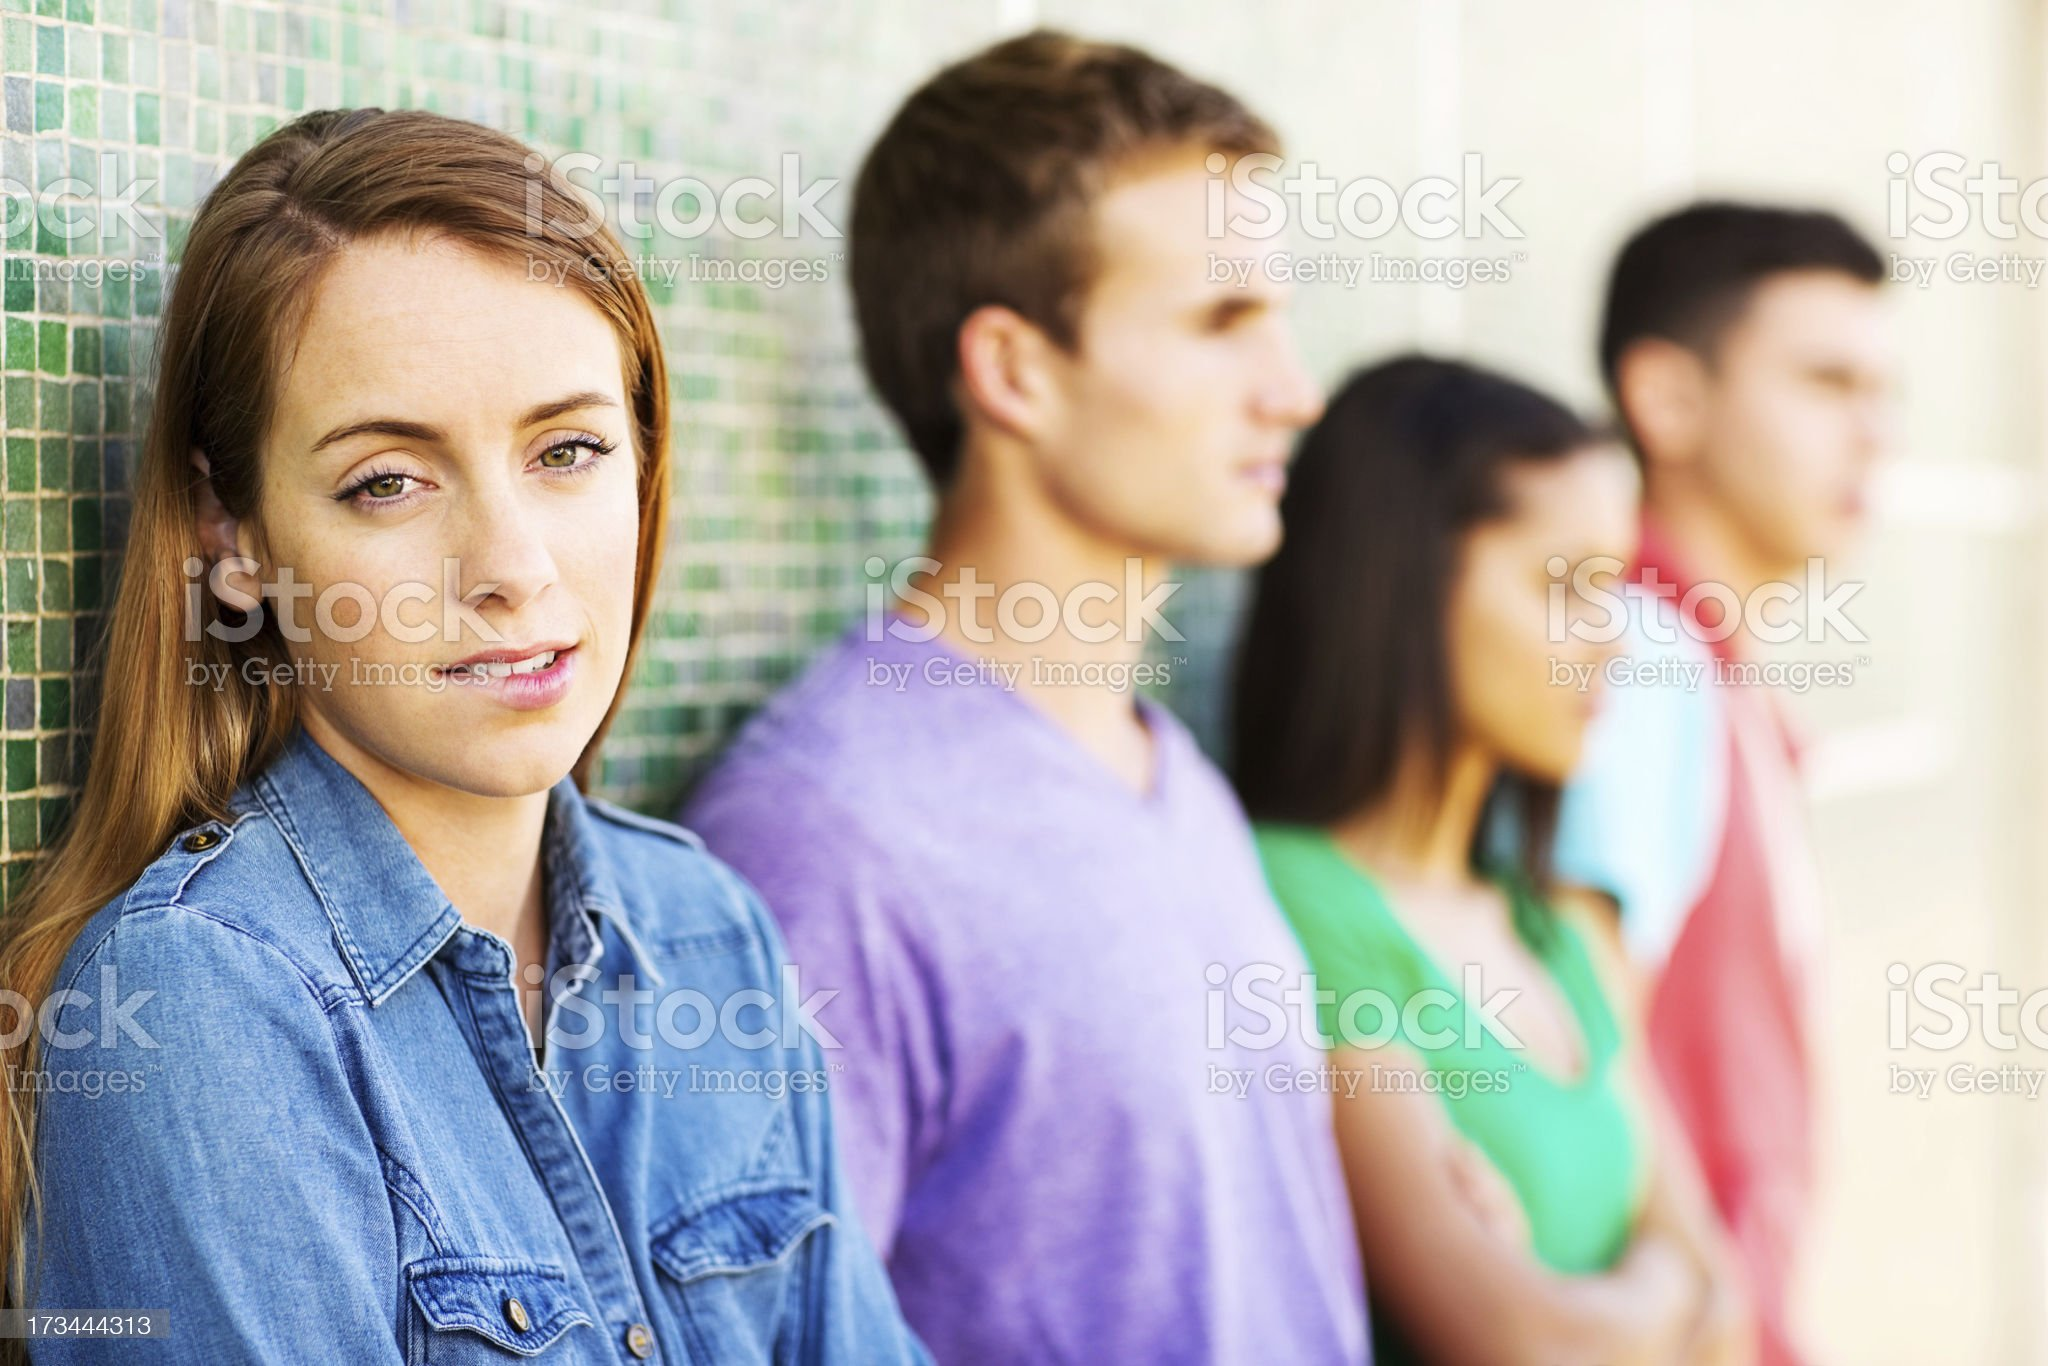 Teenage Girl Biting Lips With Friends Leaning On Wall royalty-free stock photo